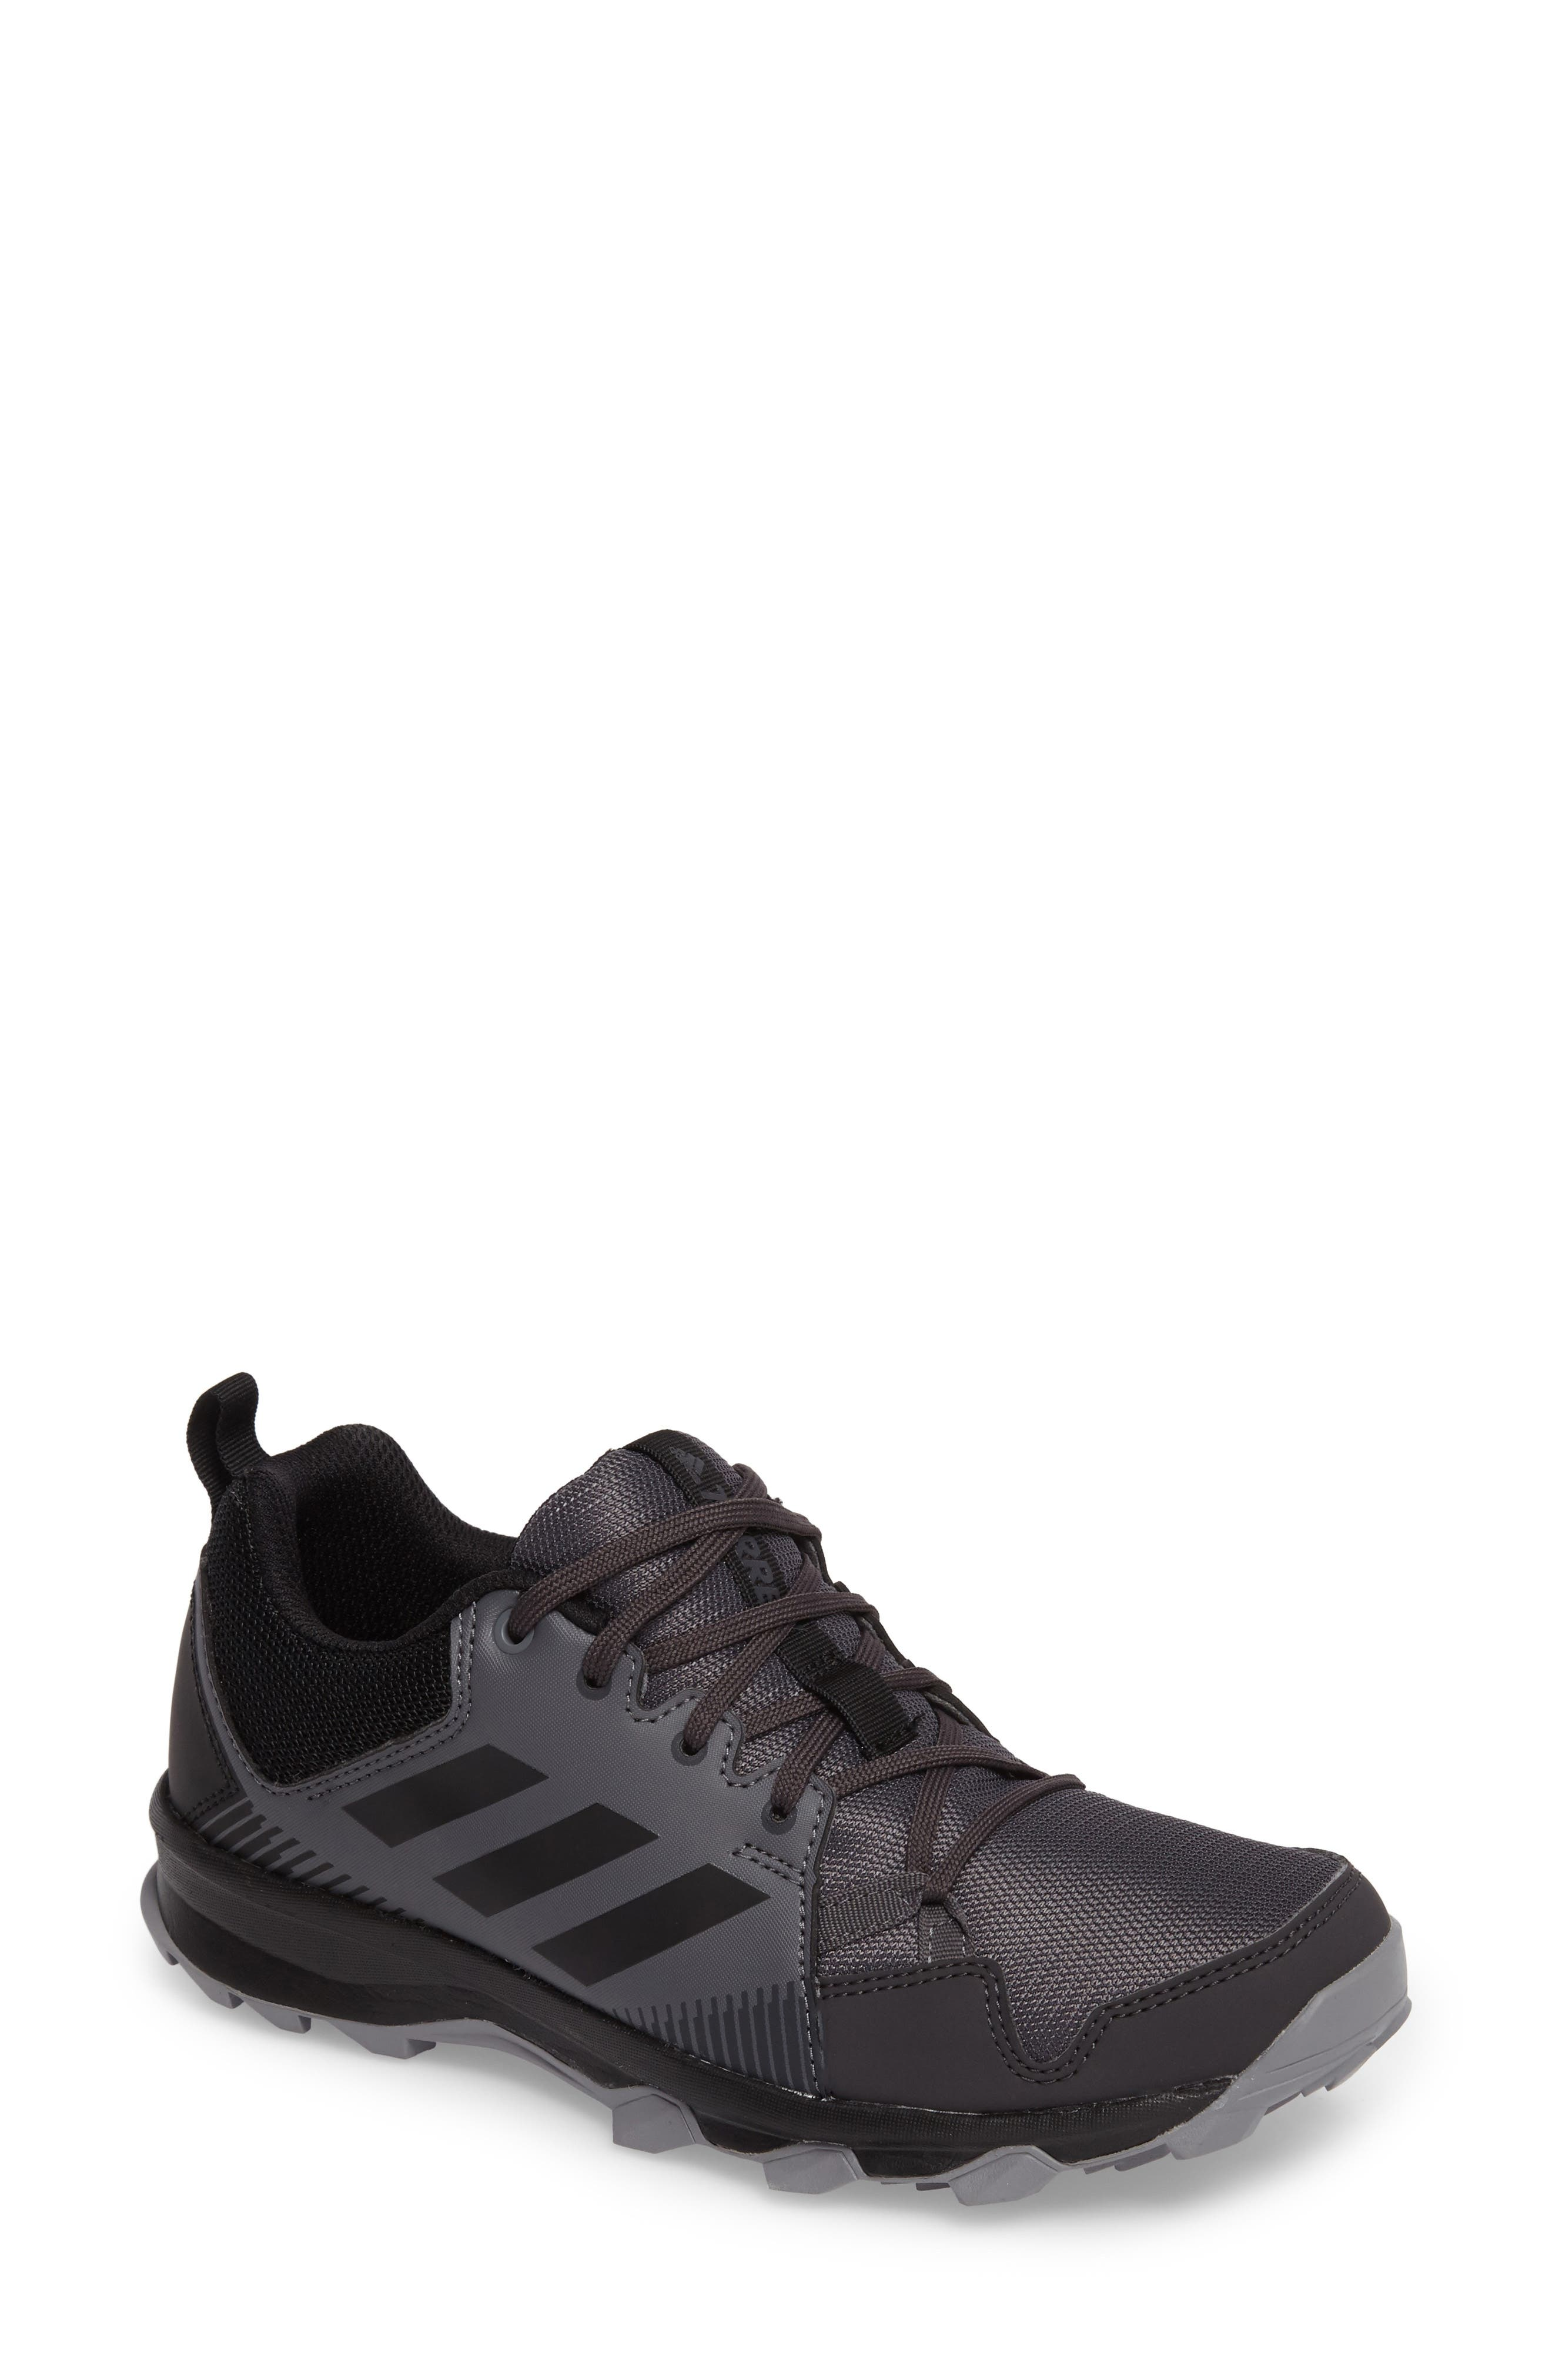 'Tracerocker' Athletic Shoe,                             Main thumbnail 1, color,                             002